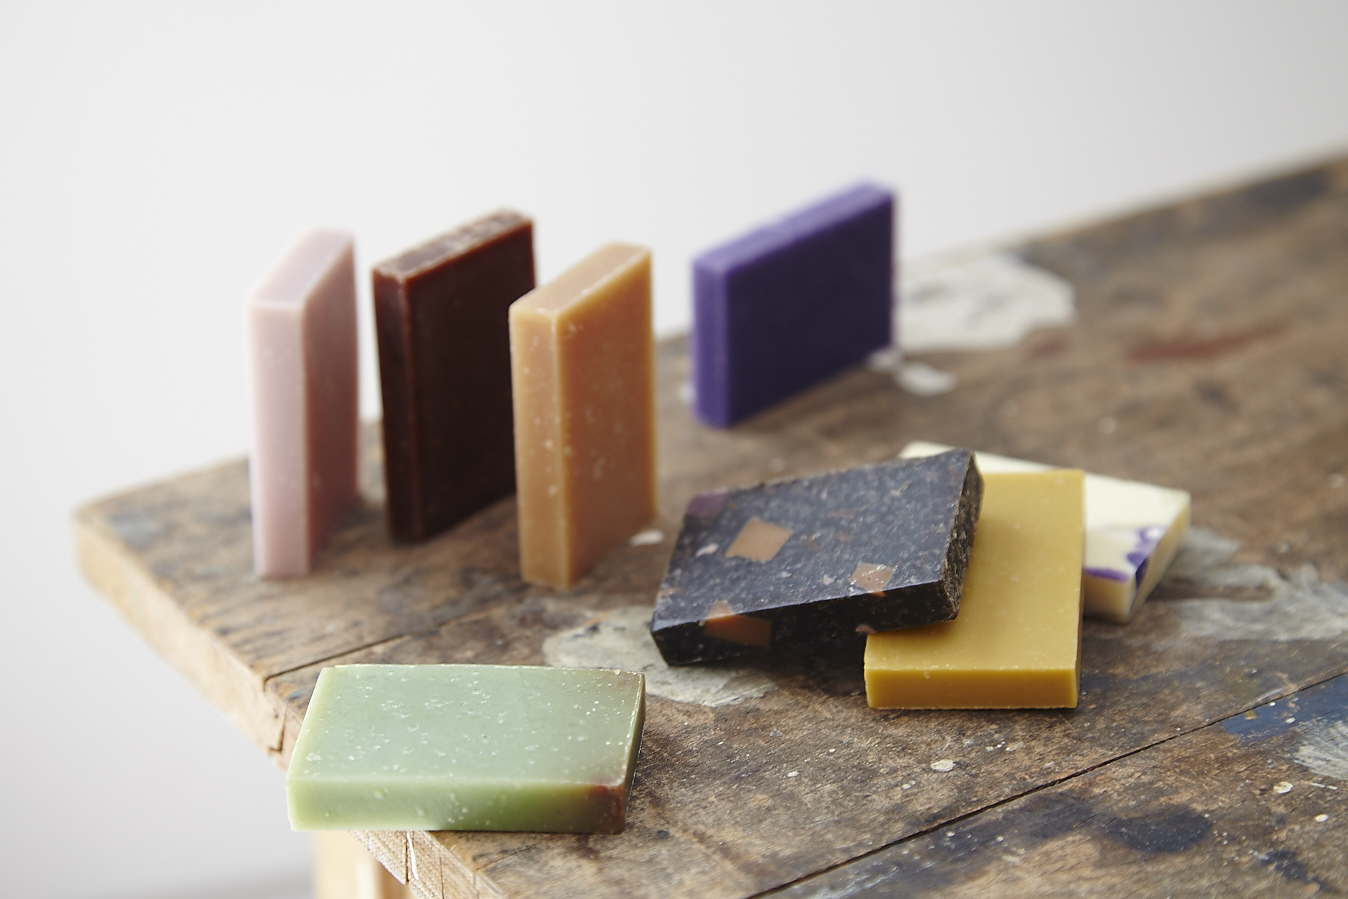 Heal's-made-in-london-soapsmith-3